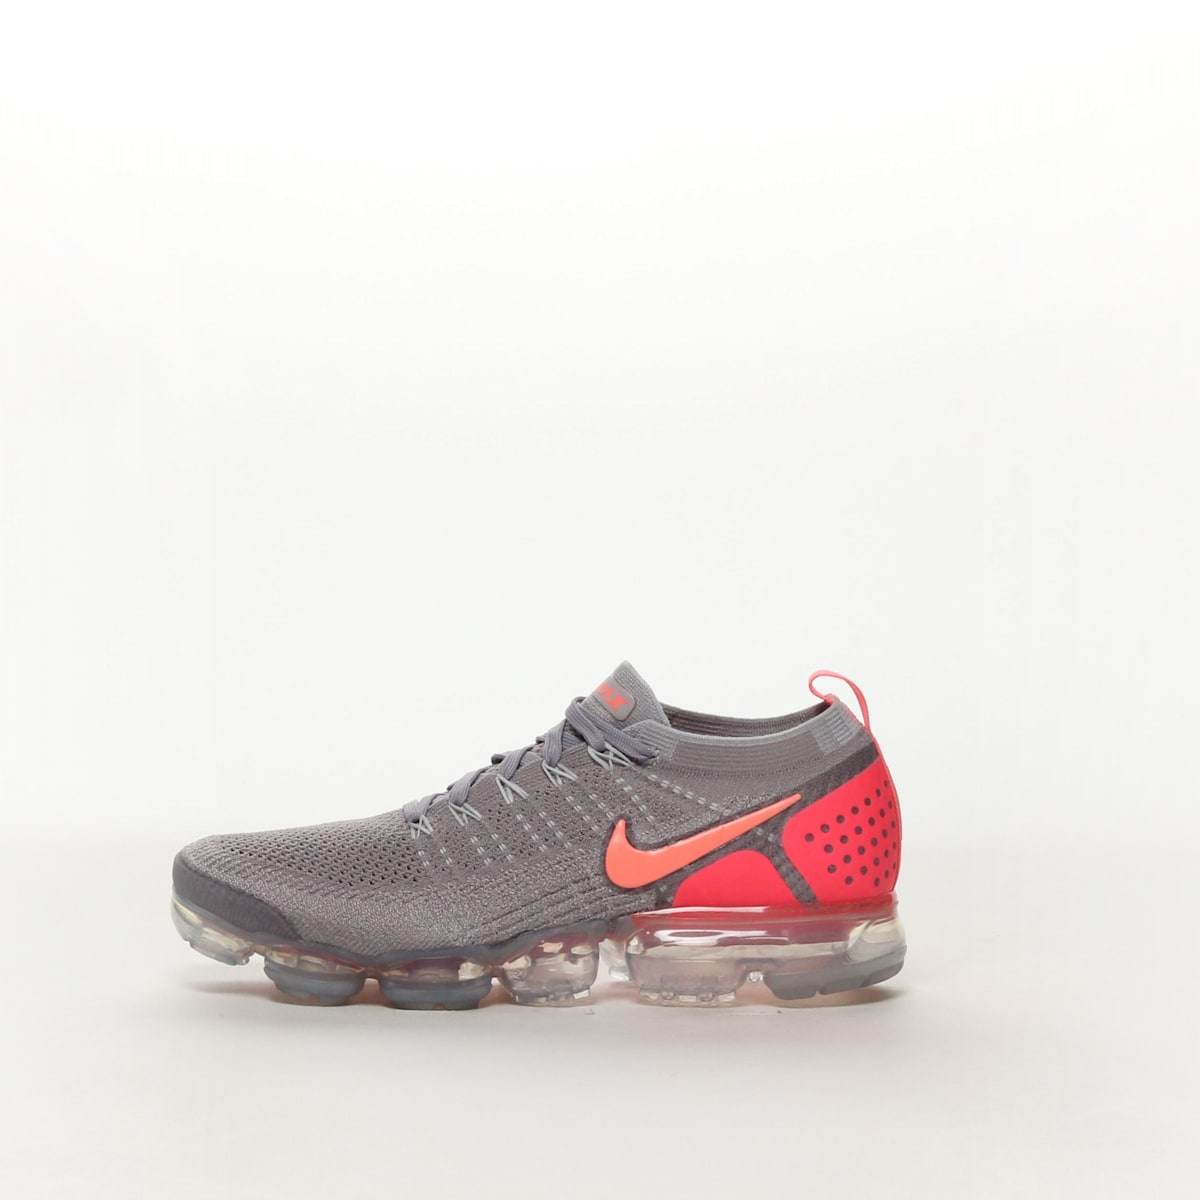 50c4c828468 Nike Air VaporMax Flyknit 2 - ATMOSPHERE GREY TOTAL CRIMSON PURE ...